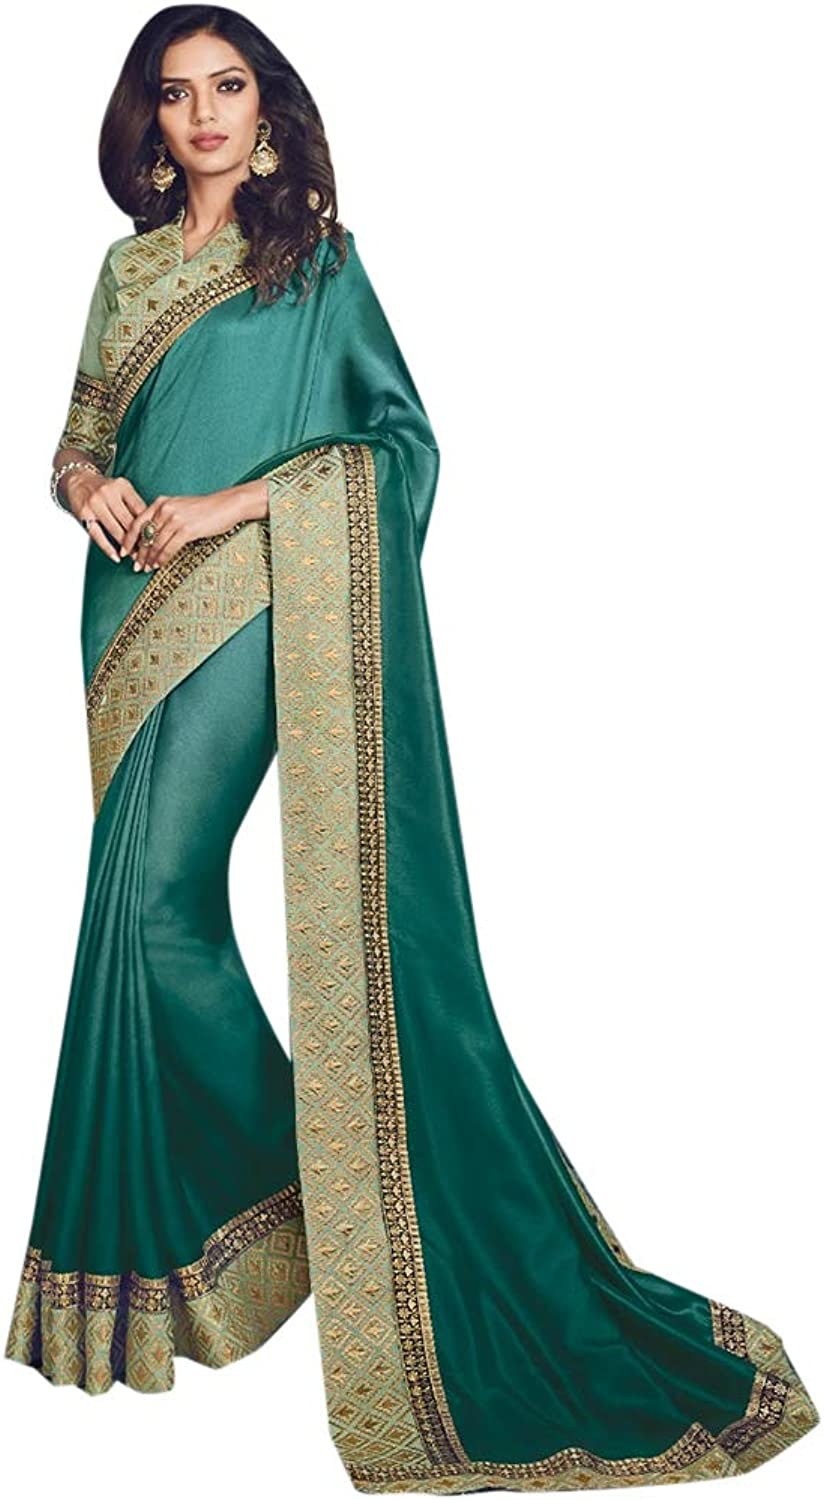 Indian Ethnic Big Border Embroidered Silk Saree And Blouse Designer Collection Women Stylish Party Formal Wear 7270